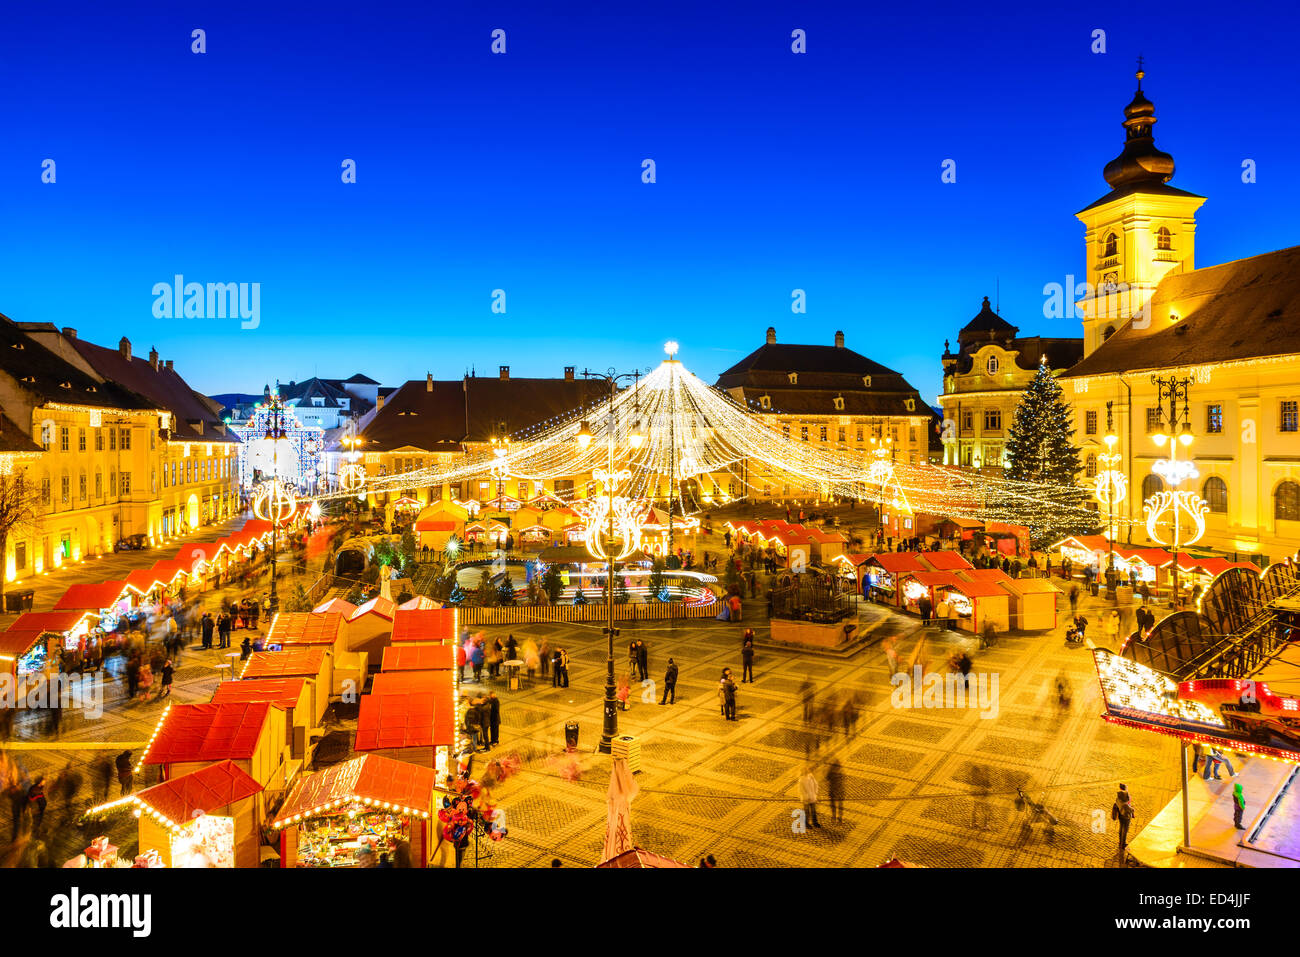 SIBIU, ROMANIA - 20 DECEMBER 2014: Night image with tourists at Christmas Market in Great Market of medieval Sibiu, - Stock Image